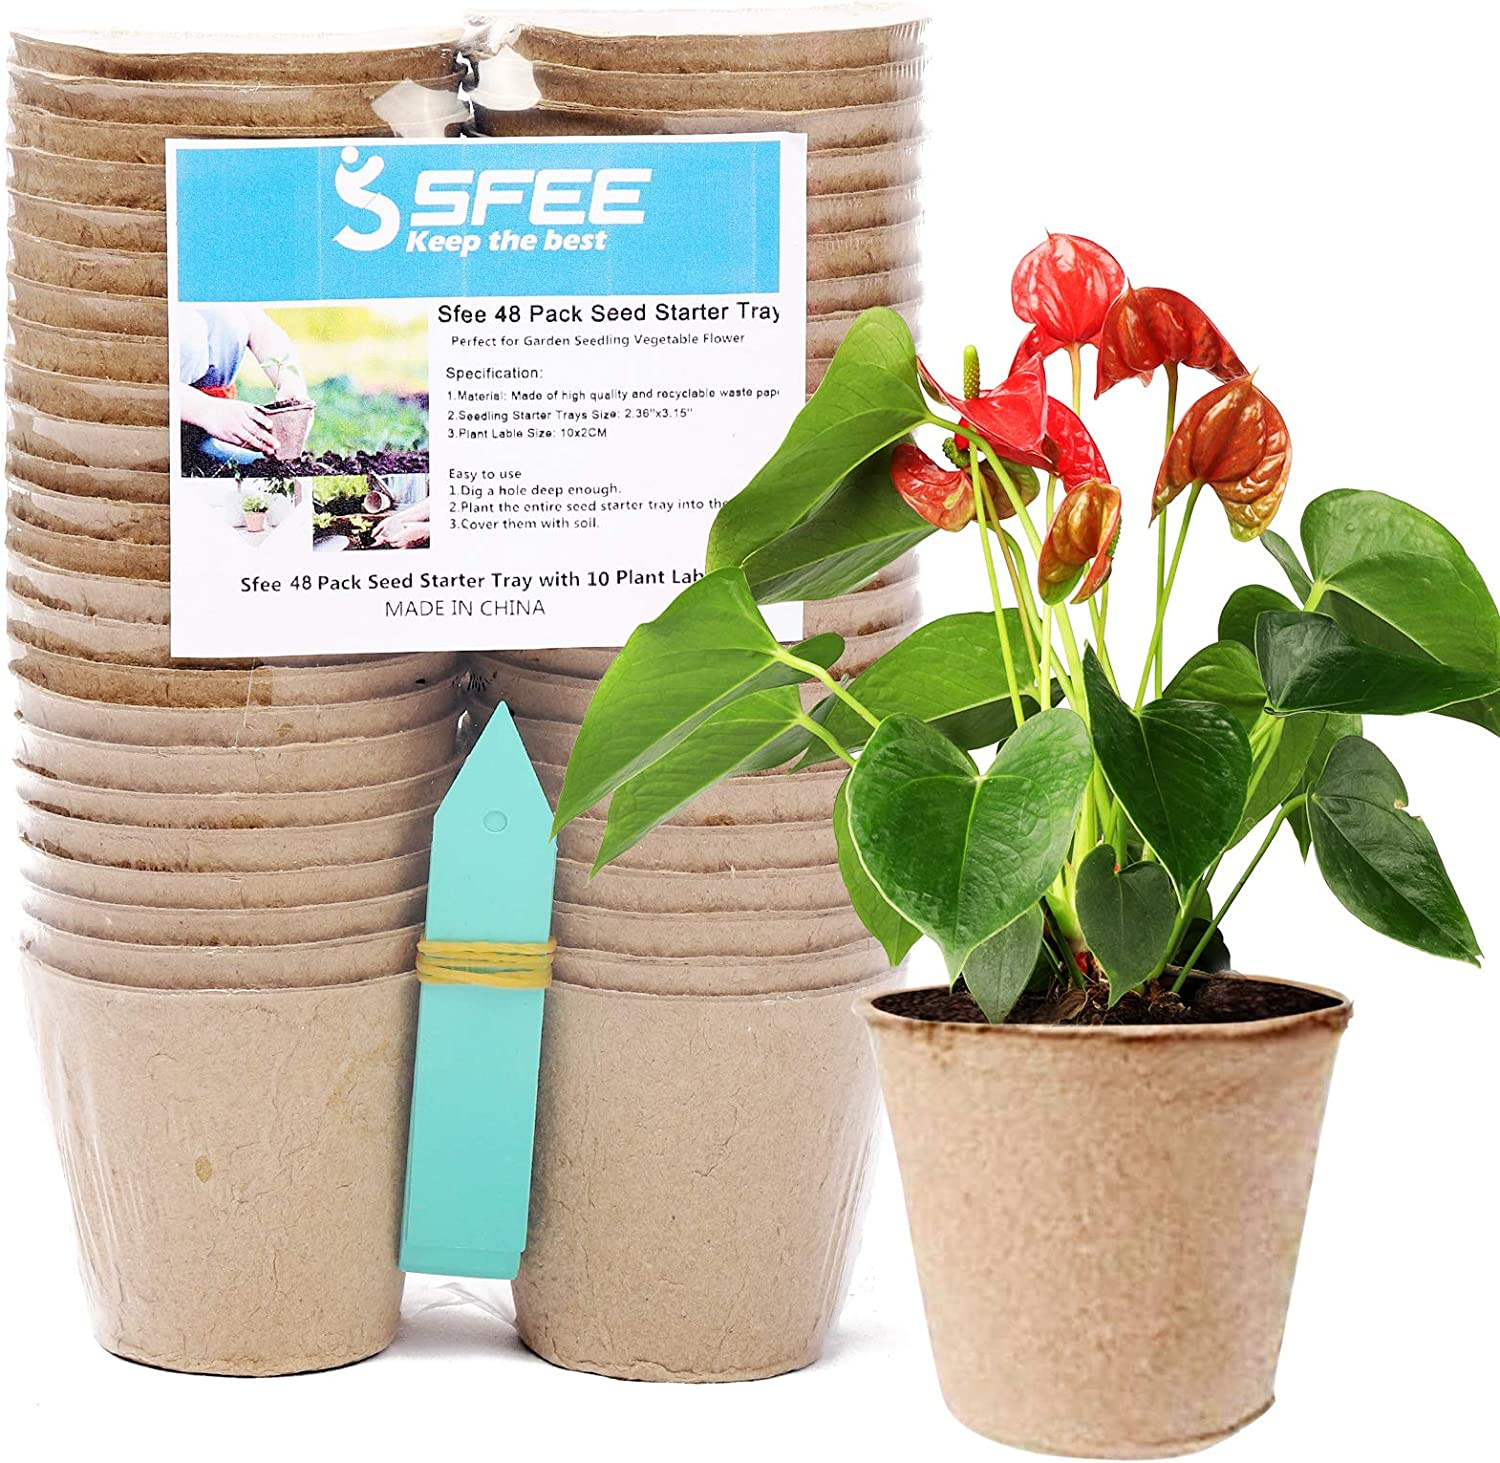 Sfee 48 Pack Discount is also underway Seed Starter Tray Biodegrada Kits Pots Peat 3.15'' Boston Mall